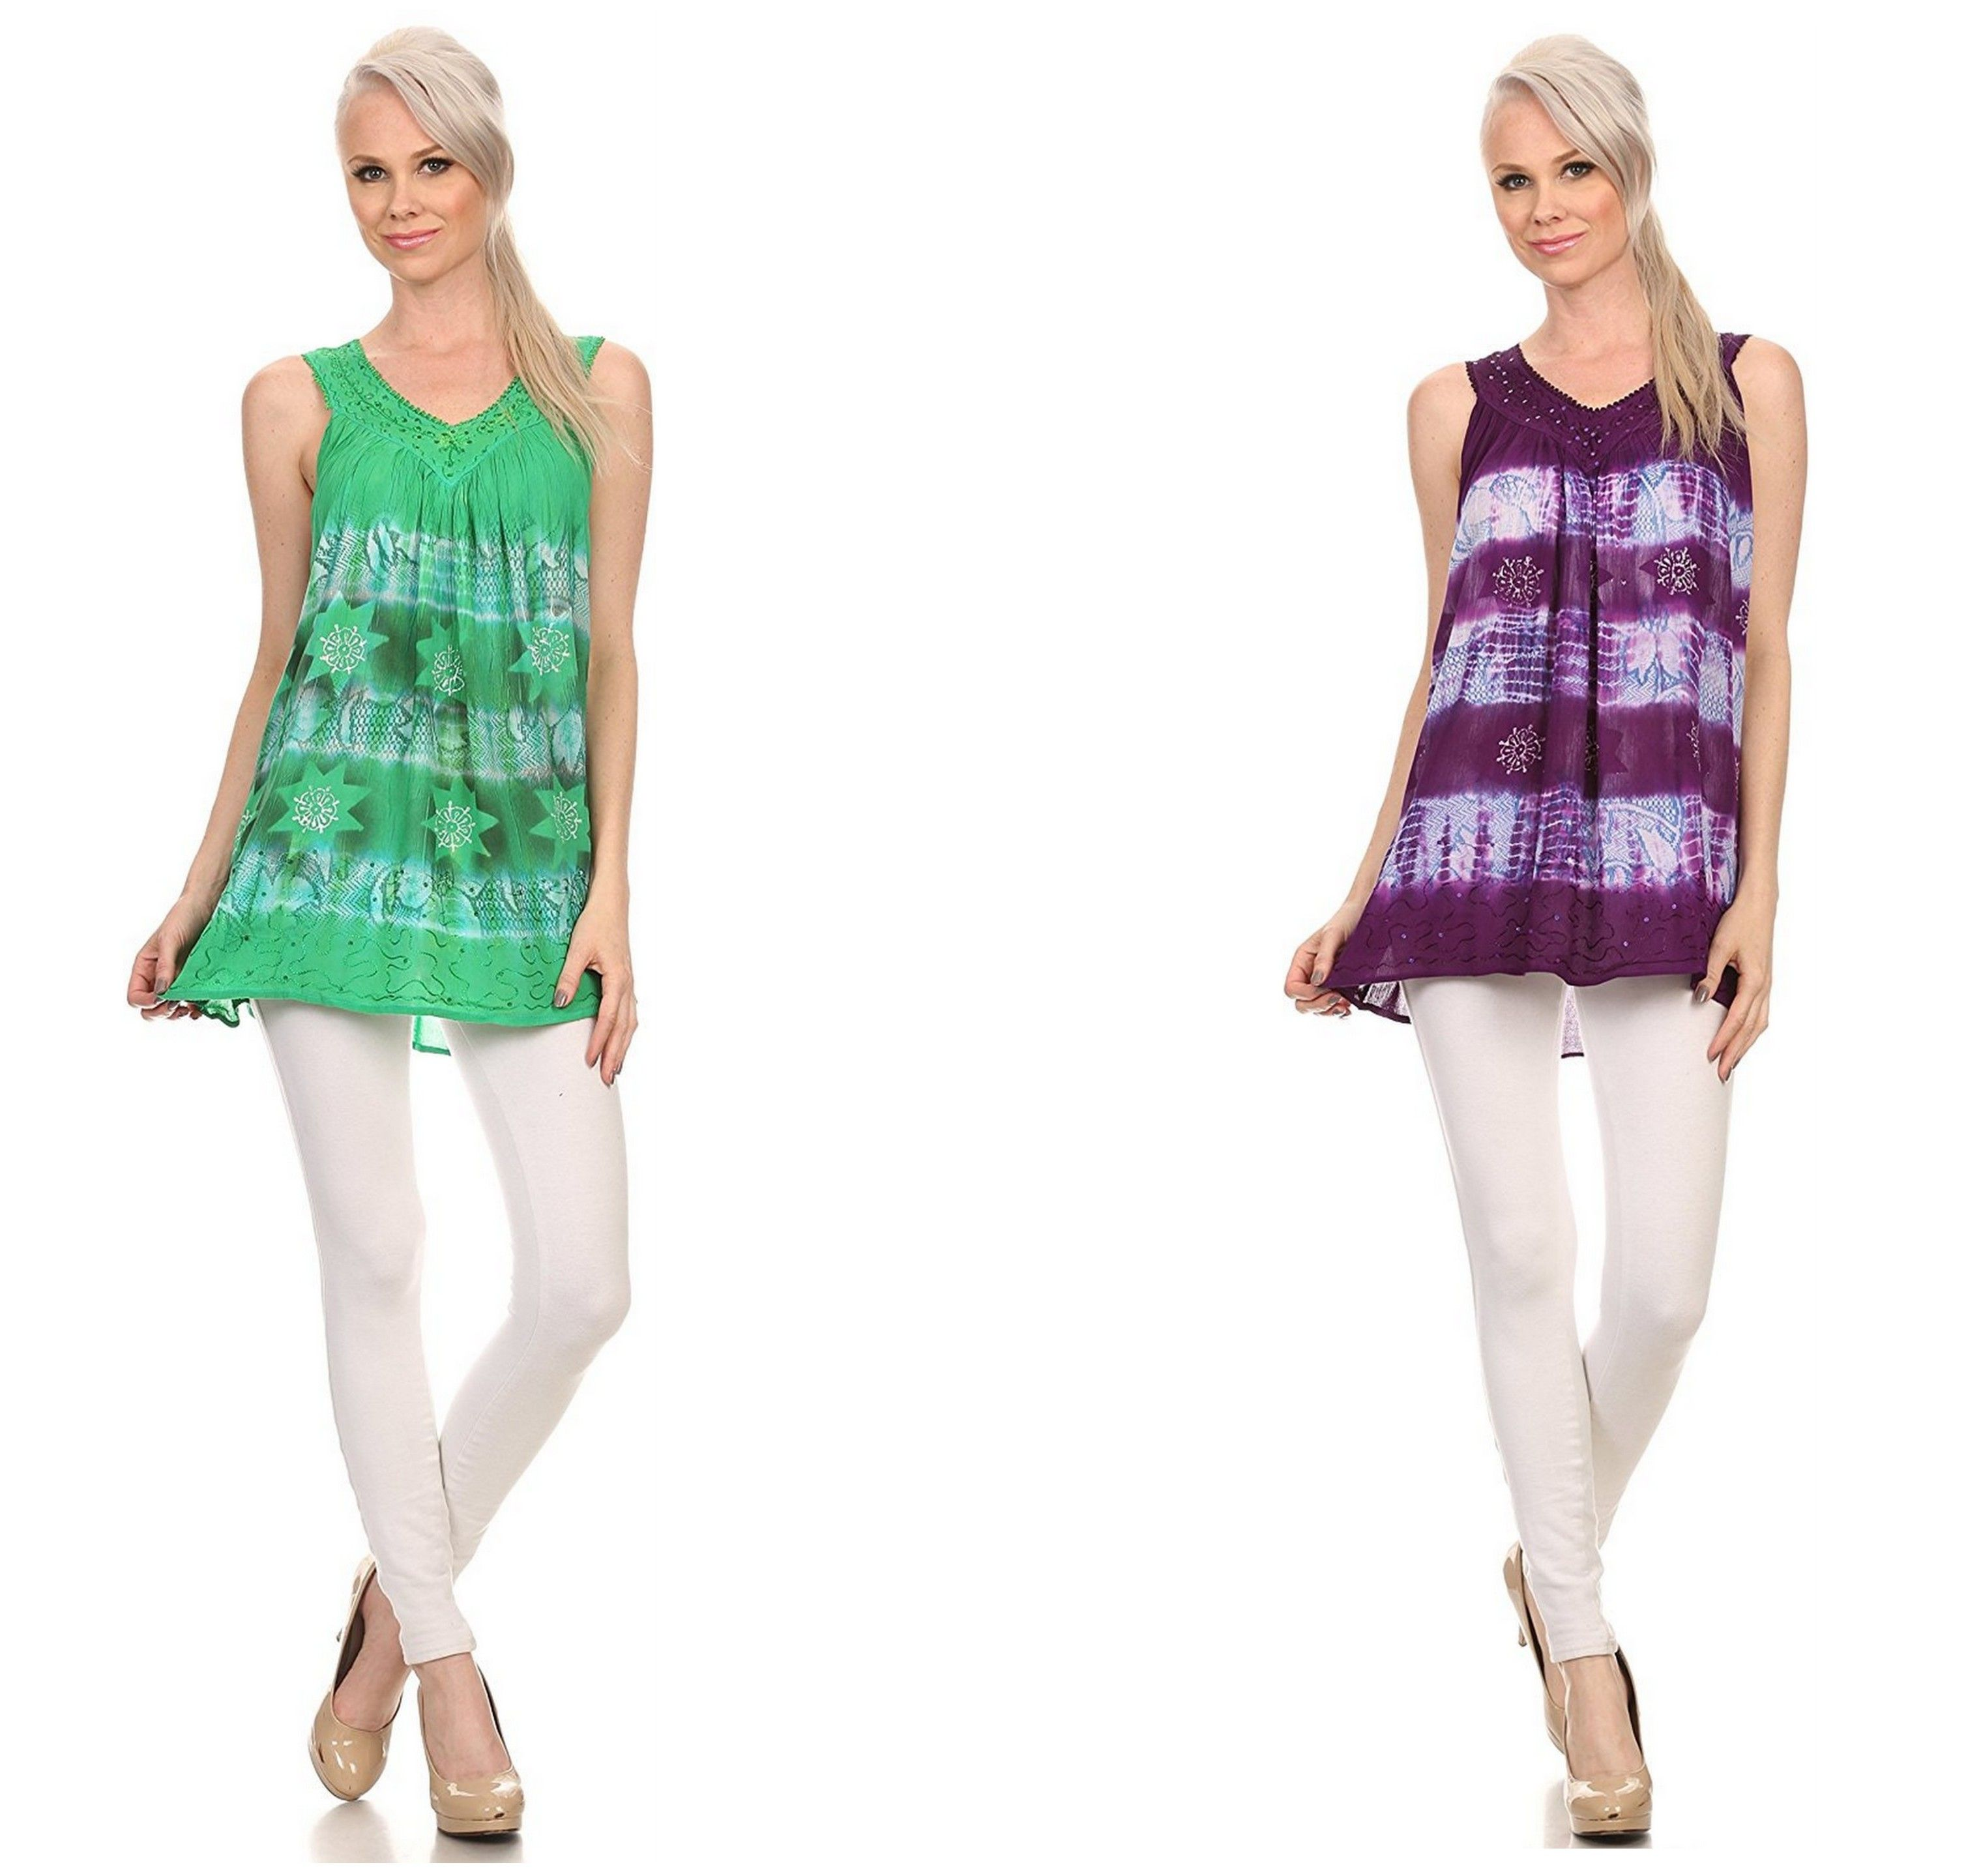 Sakkas top features a sleeveless tank top with a v neck design. There is floral design embroidery along the neckline and bottom hem as well as sequin embroidery details. #womens  #tops #ladies #apparel #blouses #fall #clothing #shirt #fashion #dress #women #plussizes #online #apparal #onlineshopping #fashionable #Bargains